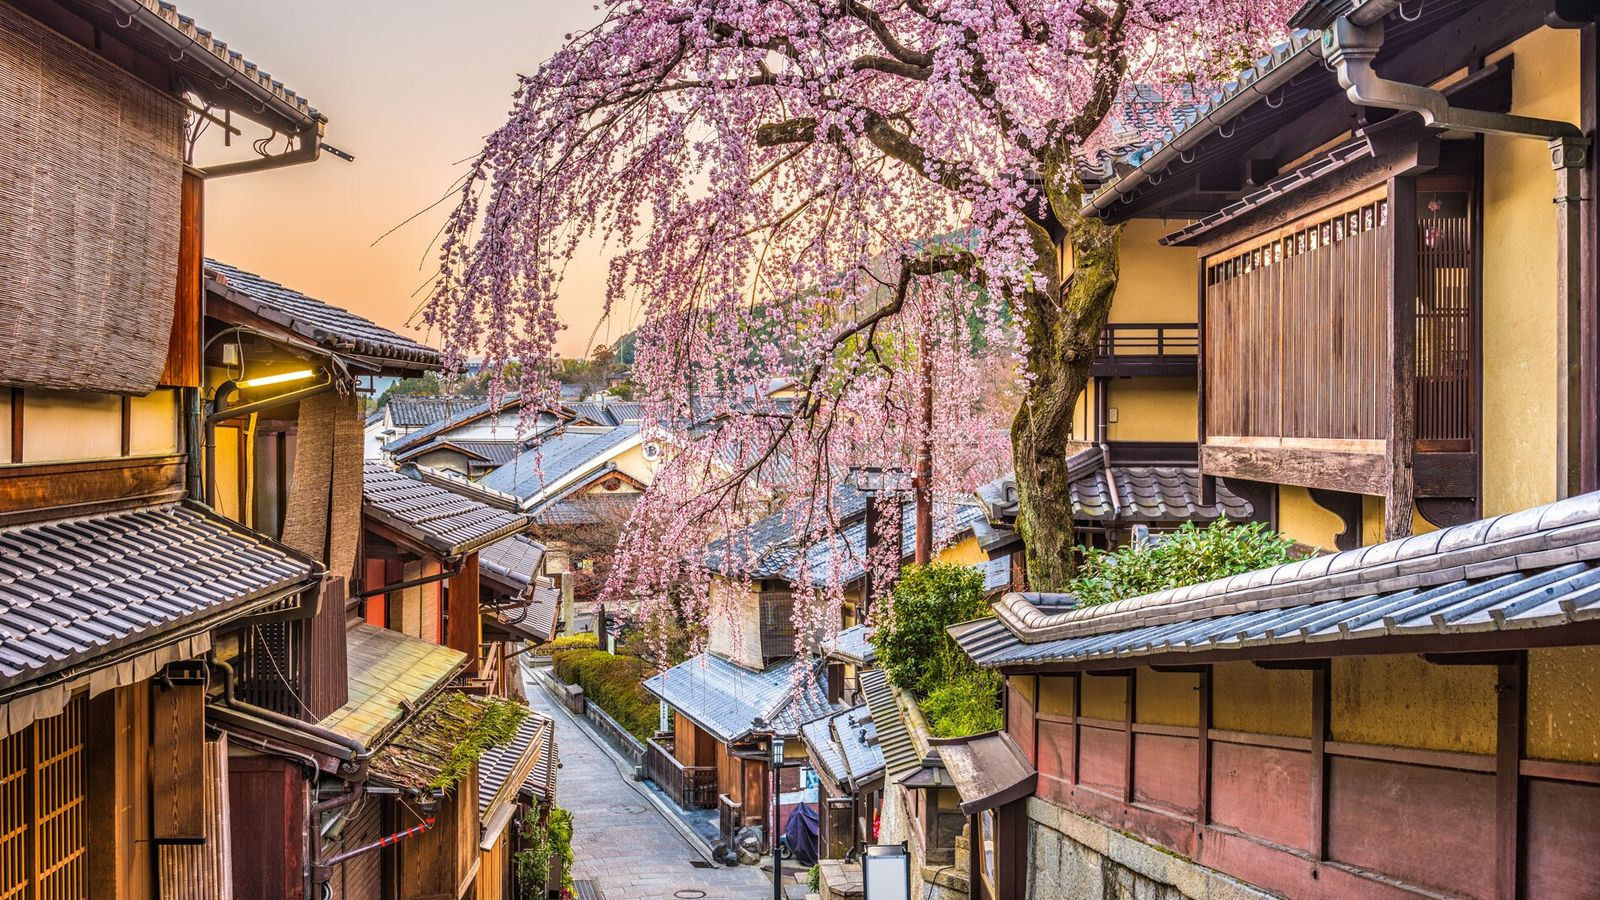 After a long day of soaking up the city's culture, Kyoto offers many relaxing teahouses to unwind ...